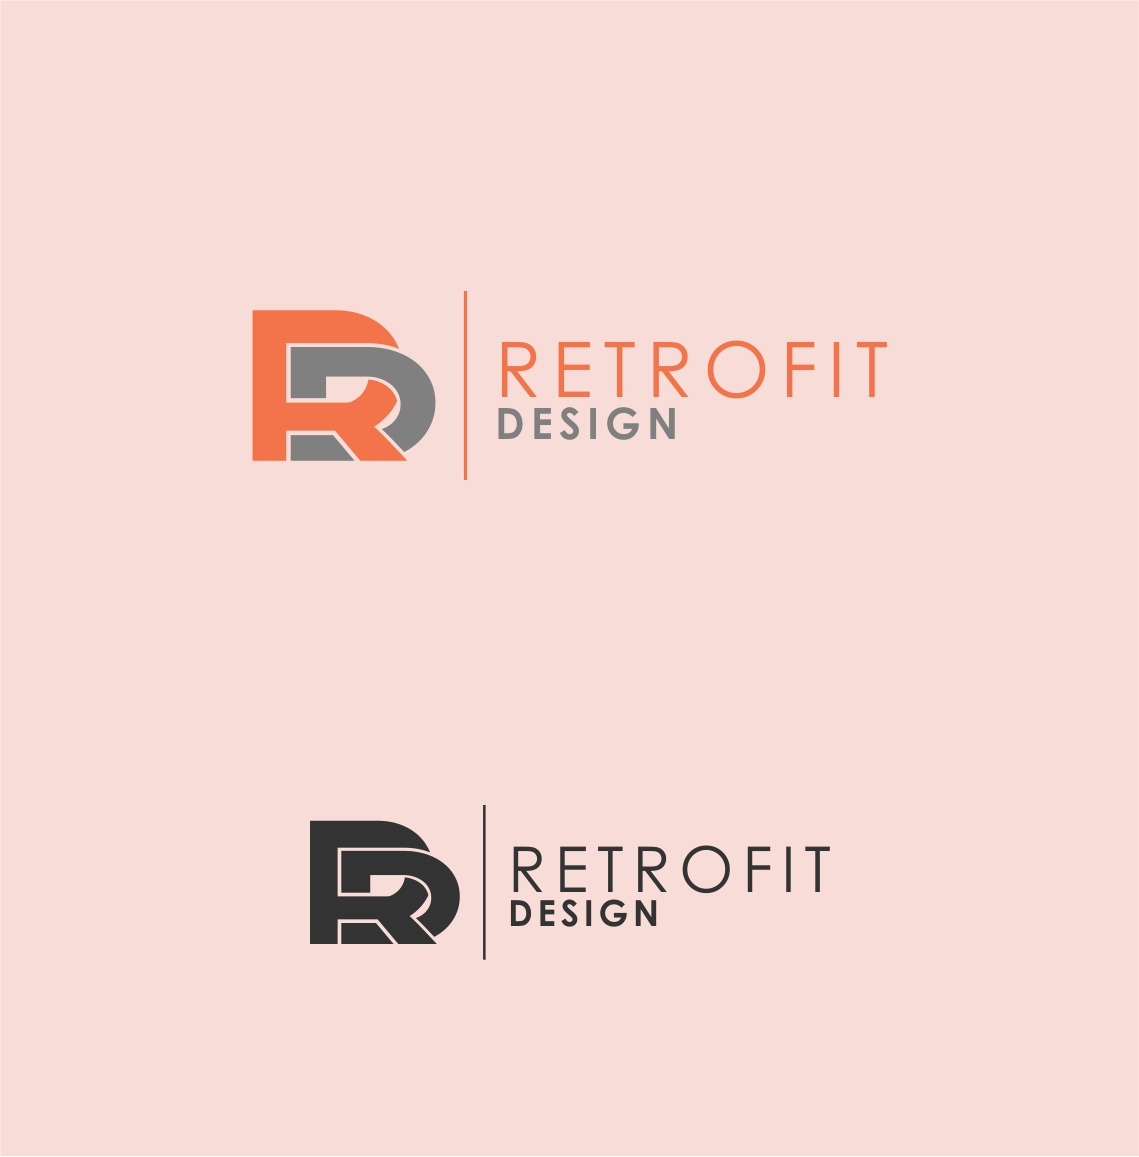 Logo Design by haidu - Entry No. 192 in the Logo Design Contest Inspiring Logo Design for retrofit design.